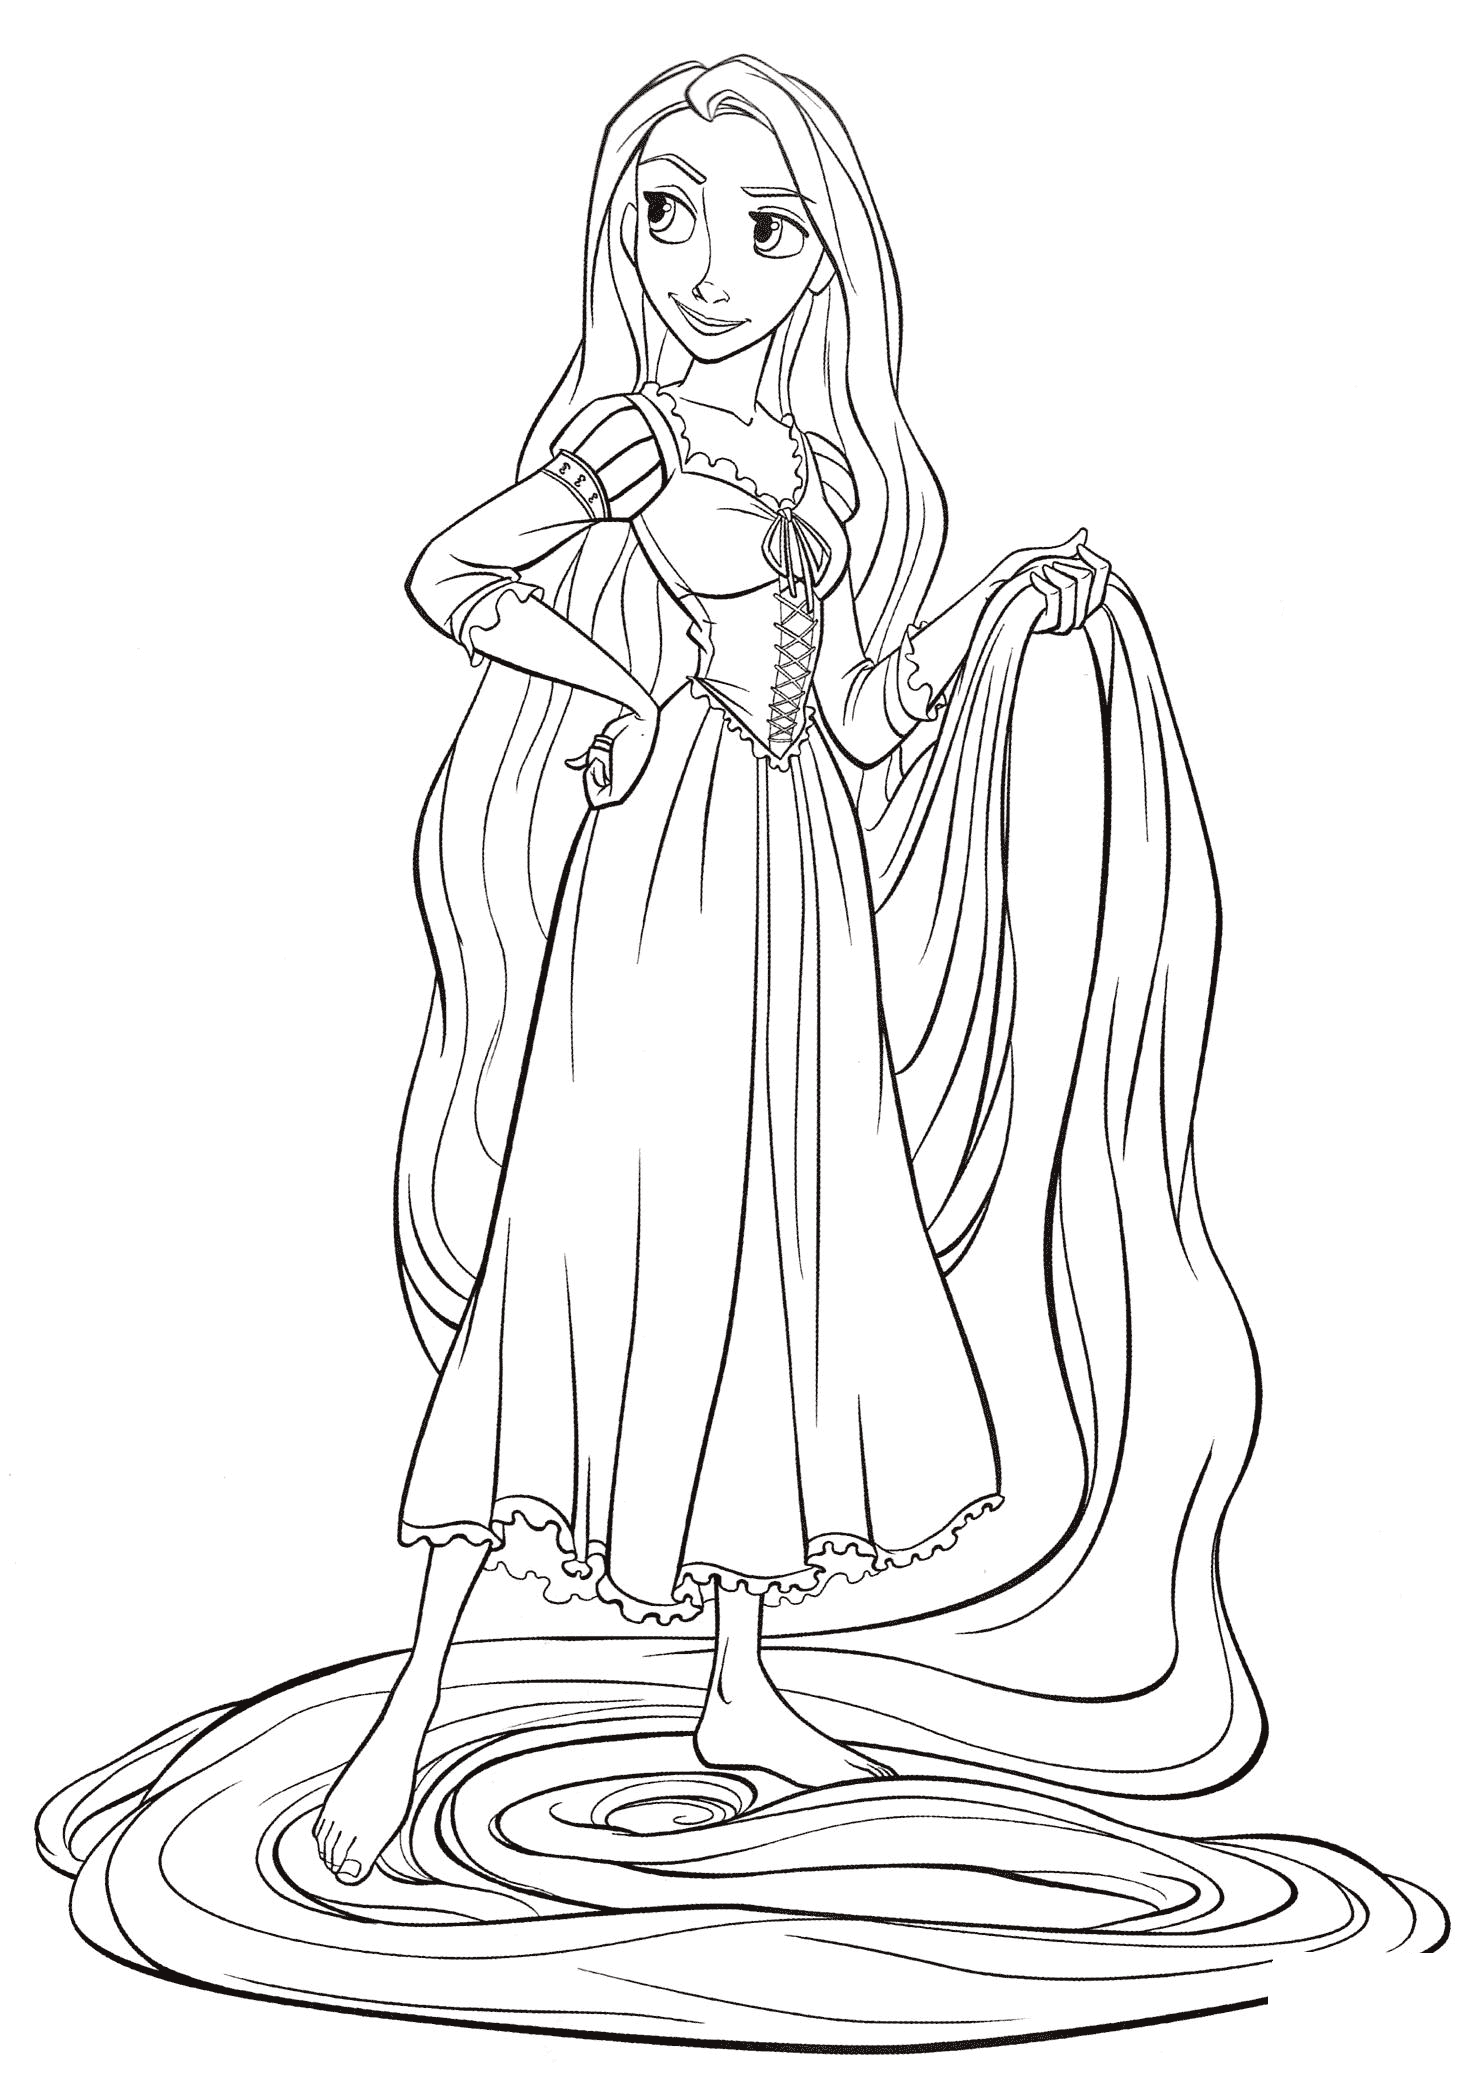 Rapunzel with a long hair Coloring Page